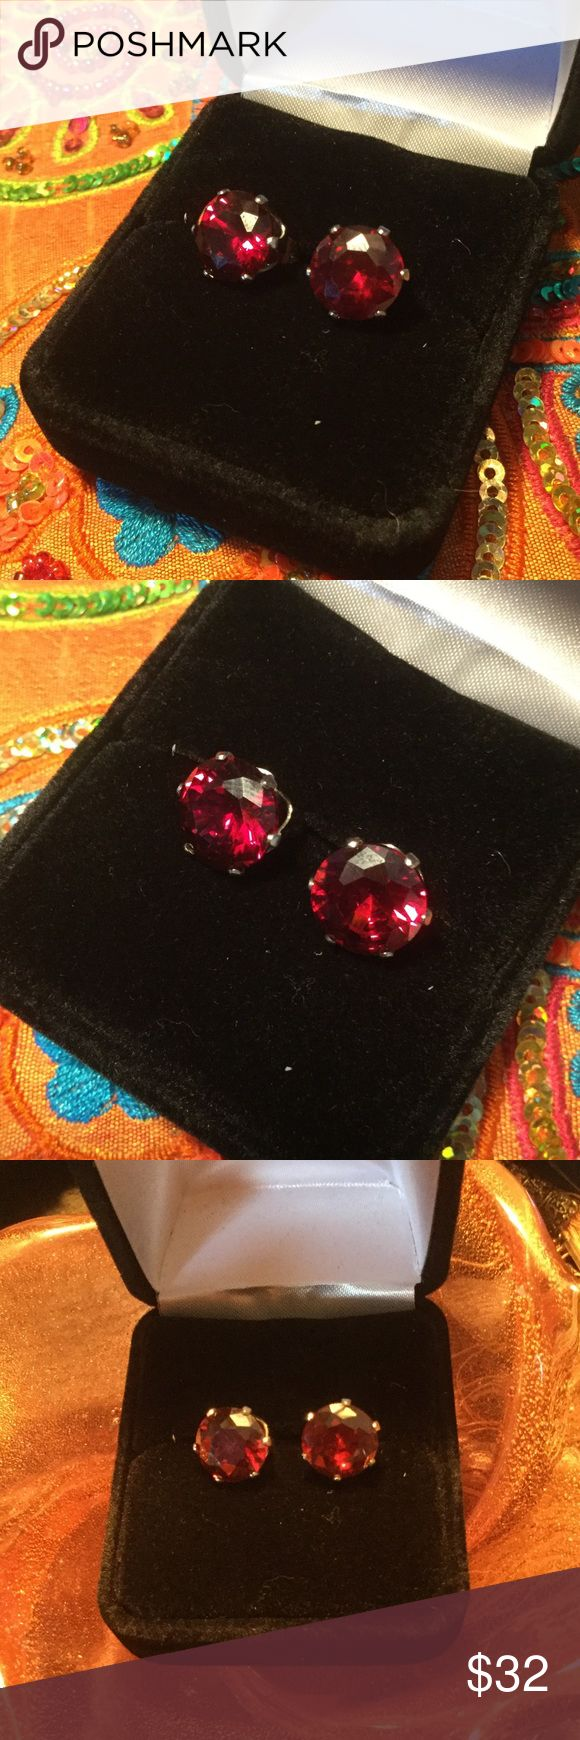 🔥 Fiery Garnet Earrings 🔥 Deep fiery Garnet studs,  2ctw of mesmerizing glamour.  The richness of a fine burgundy wine frame your face with a lux look.  14 K HGE Wear to the boardroom to through an evening rendezvous.  Genuine Garnet Quartz alive like burning embers. Atlanta Auction Jewelry Earrings